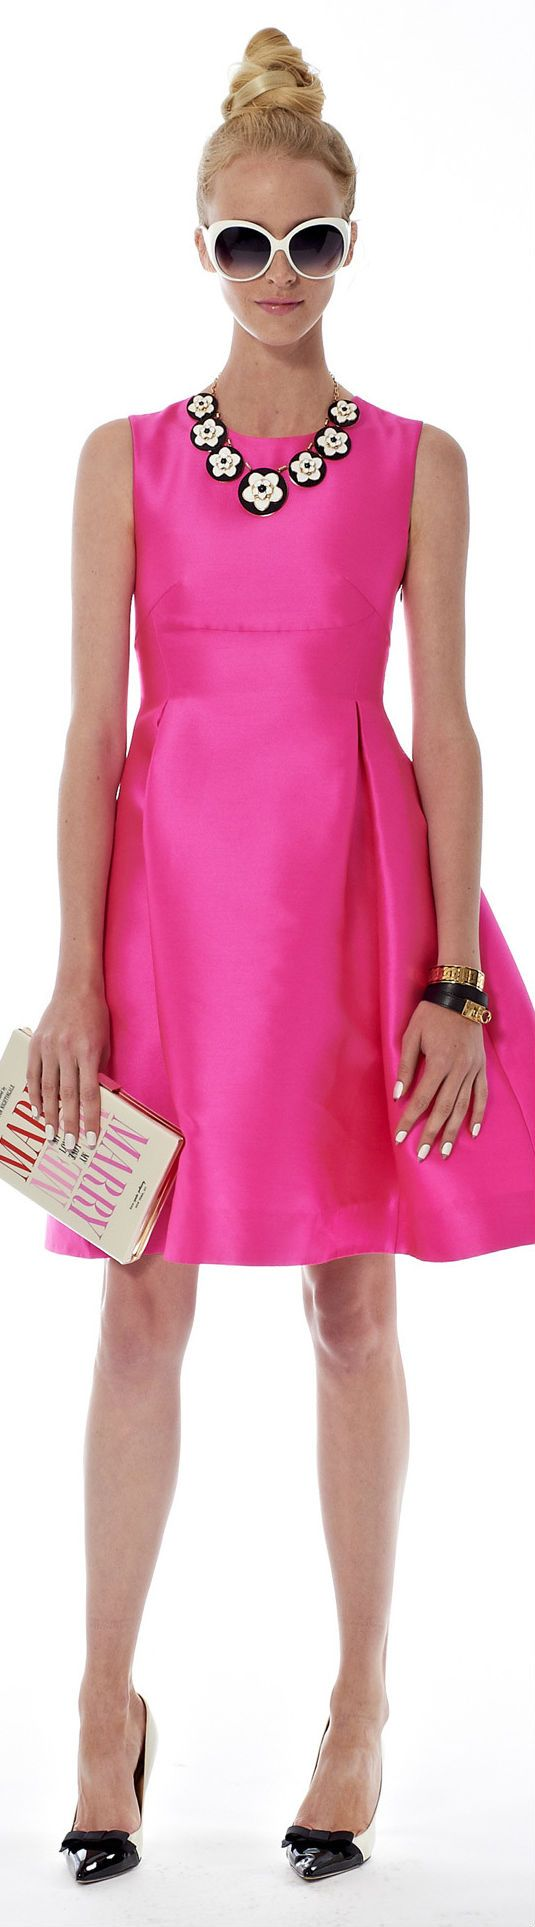 Kate Spade  2014. If you don't smile when seeing this, seek professional help...